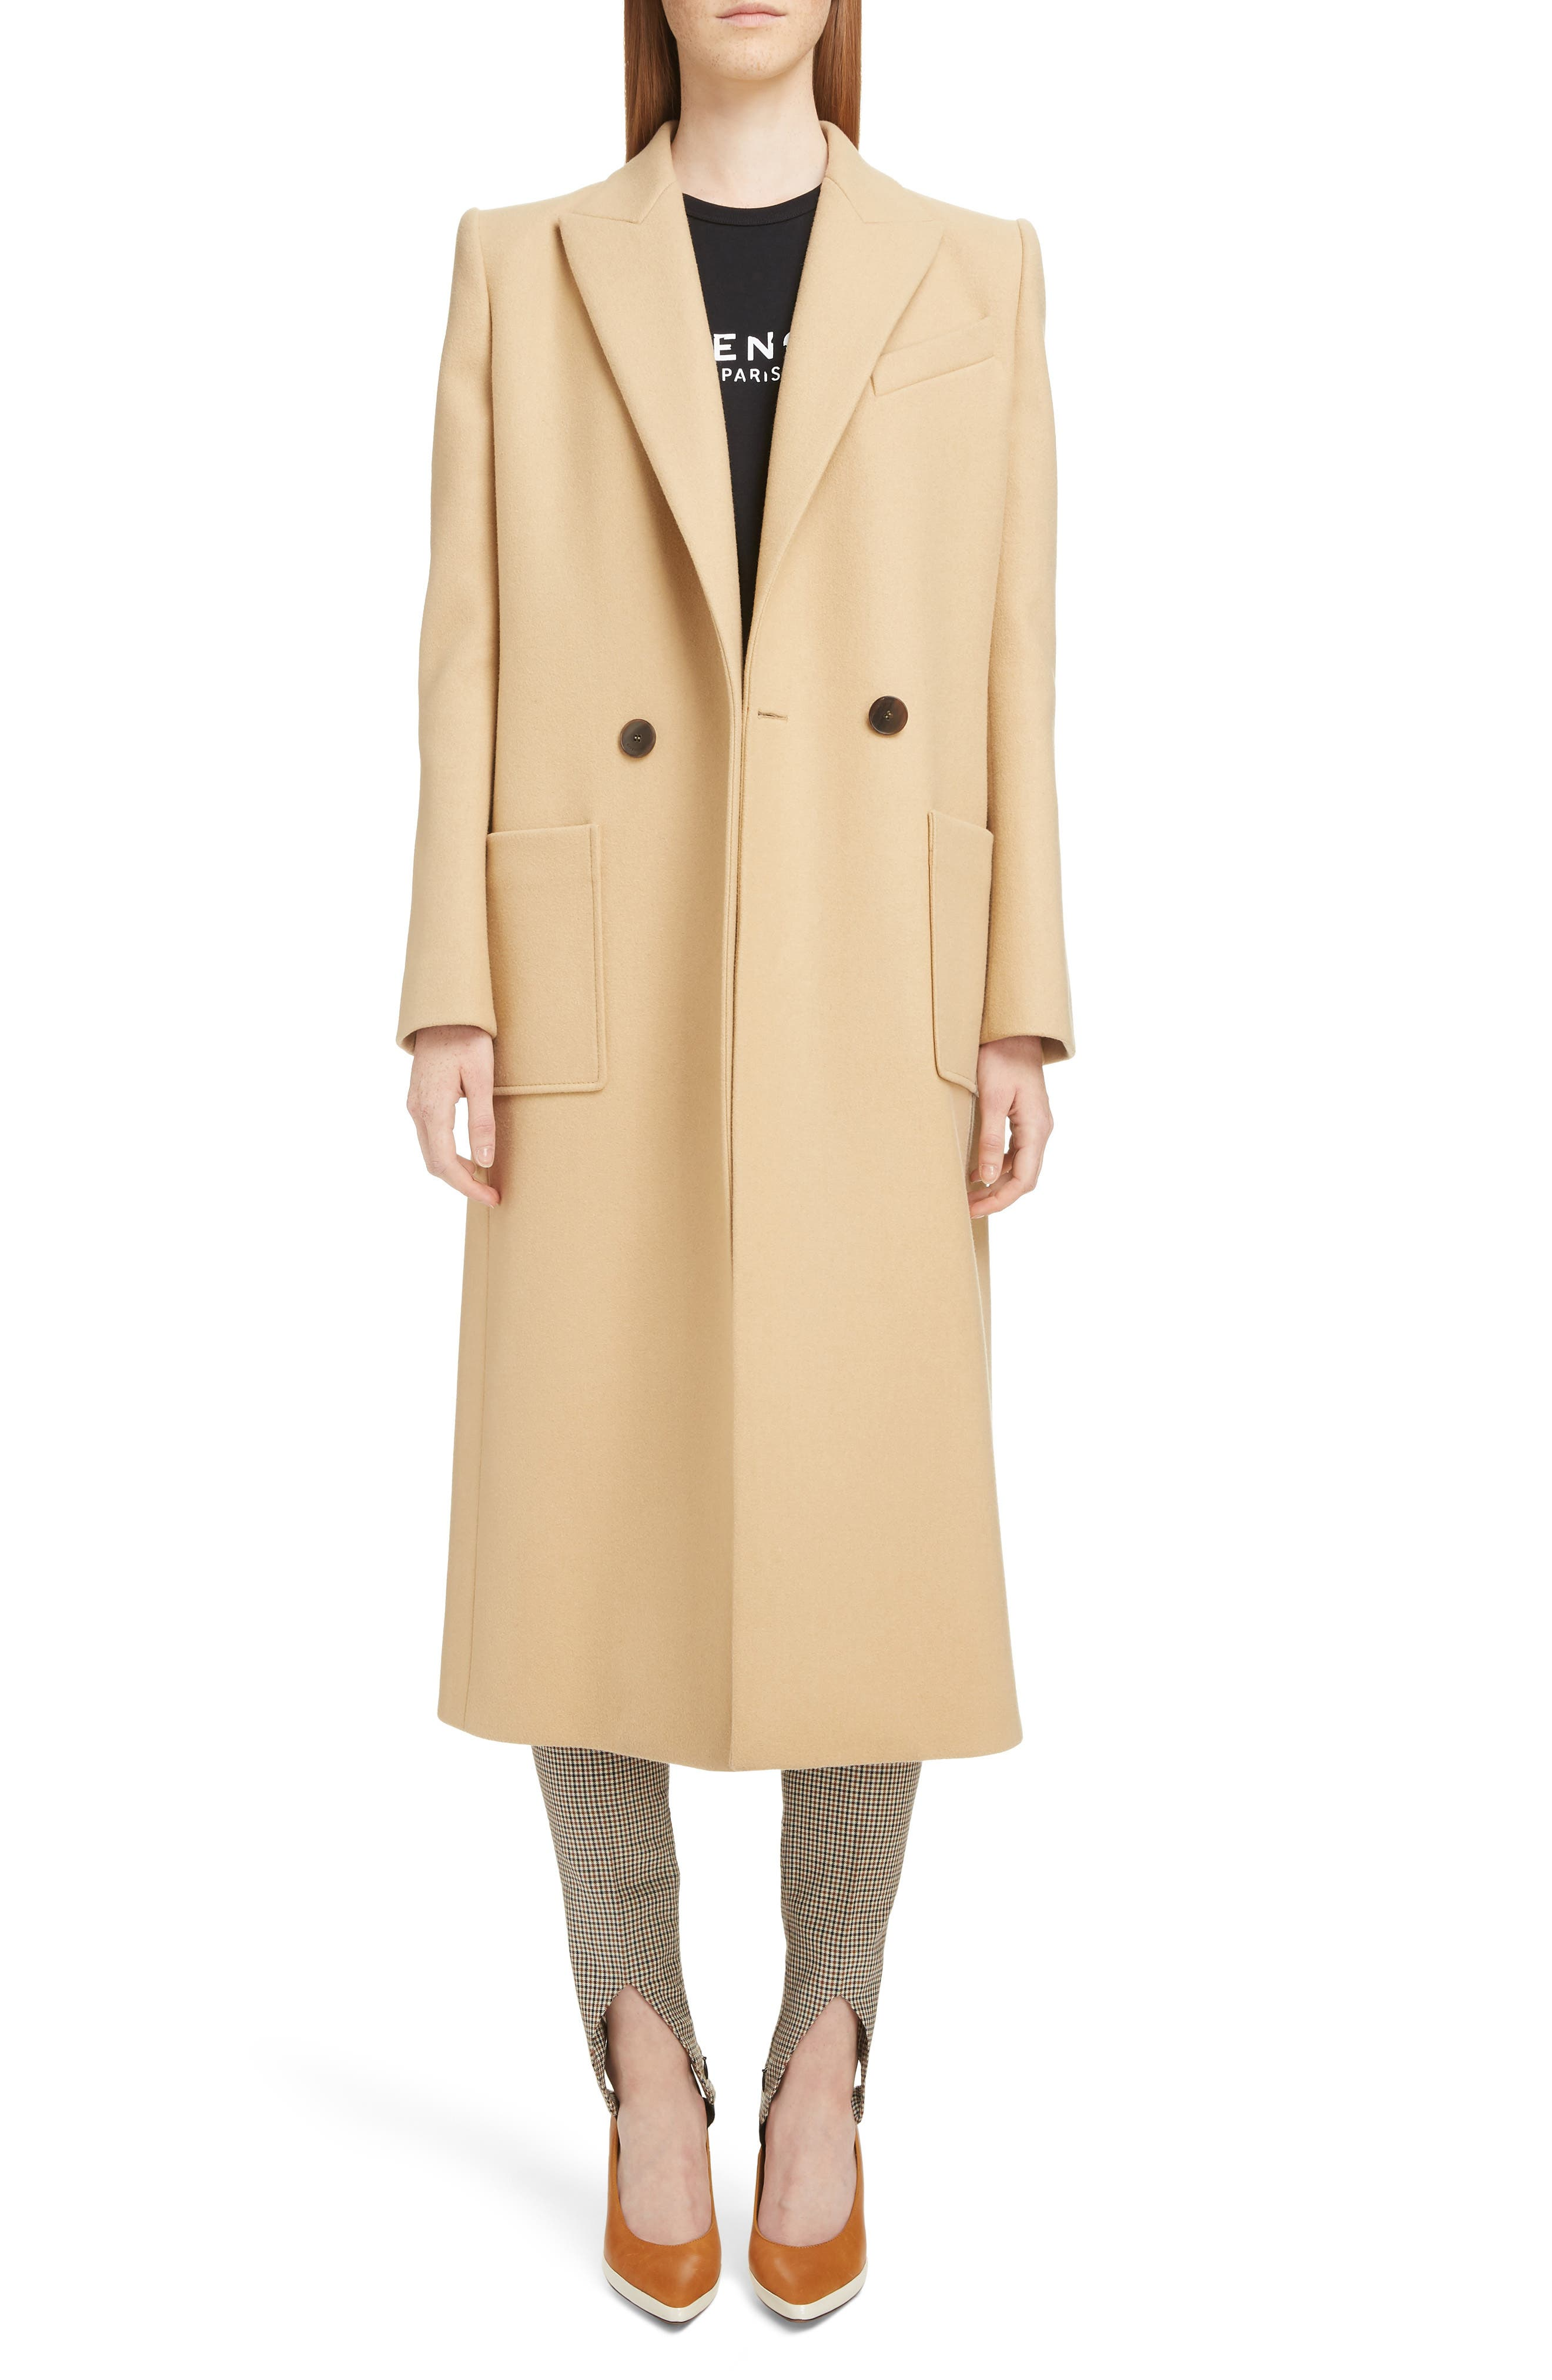 GIVENCHY,                             Double Breasted Wool Coat,                             Alternate thumbnail 6, color,                             250-BEIGE